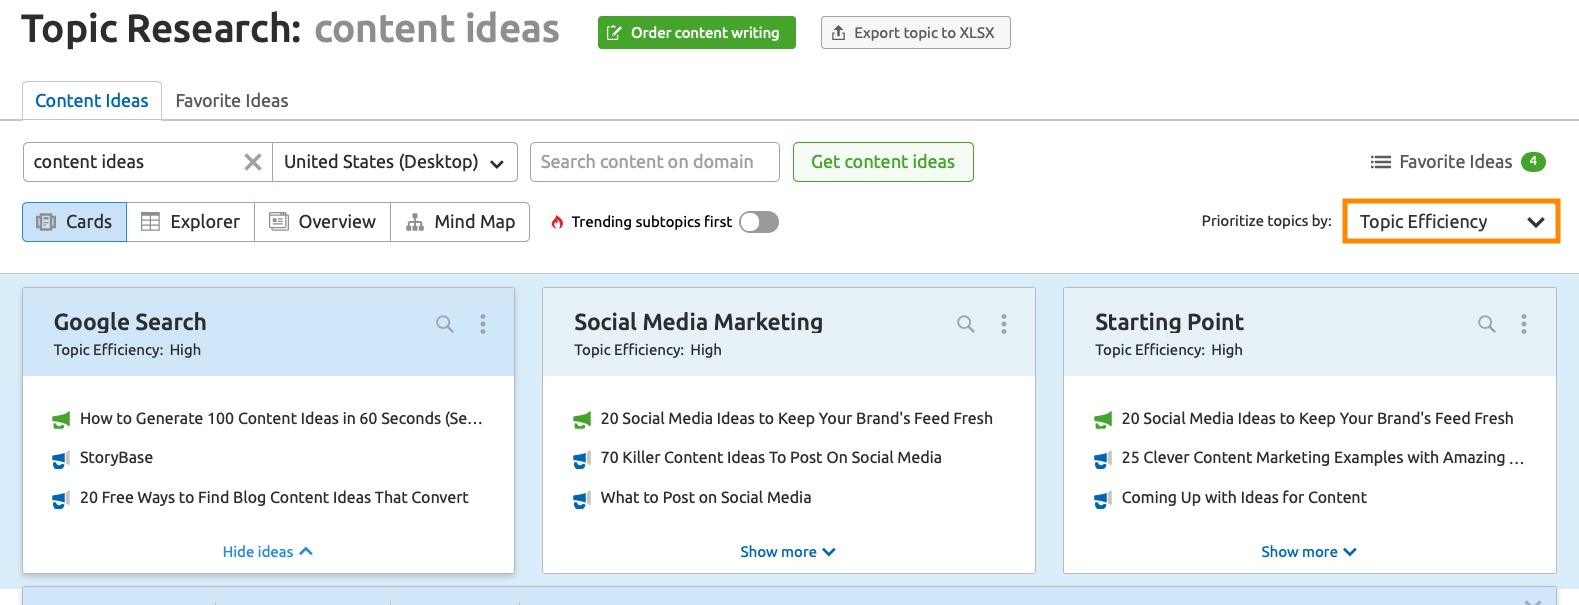 How to Find Relevant Topics with Good SEO Potential image 1